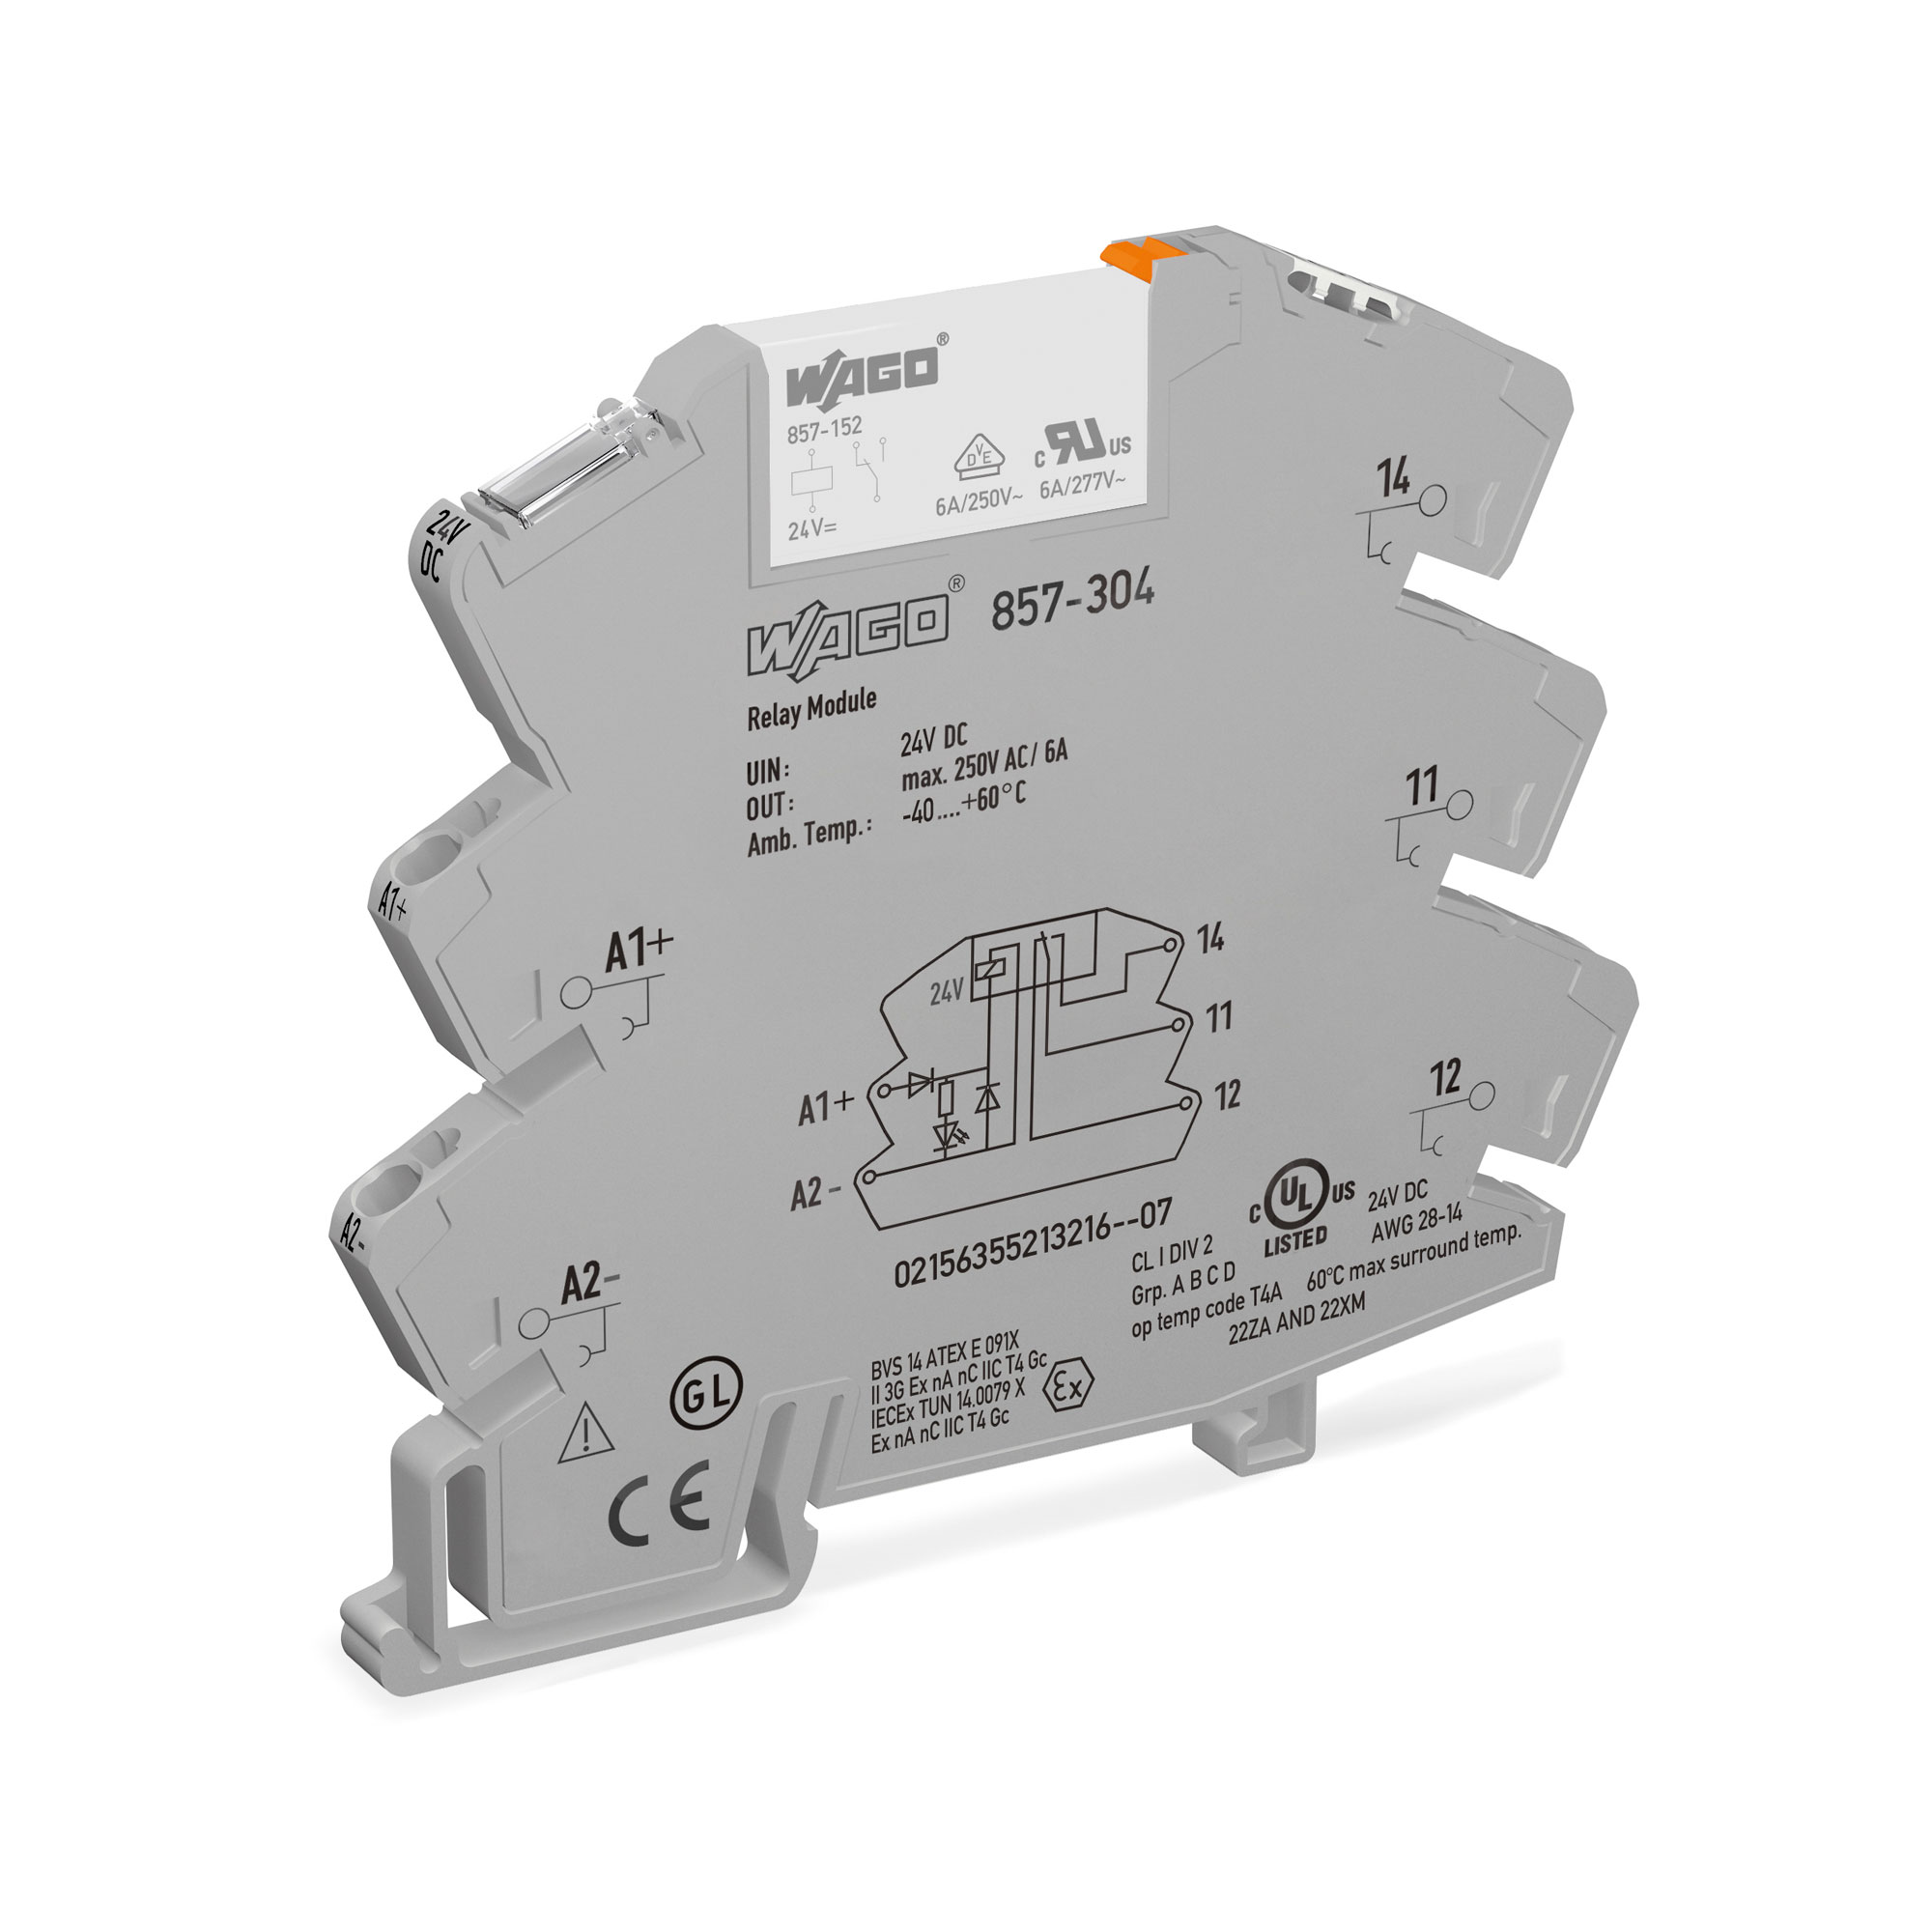 Wago Relay And Optocoupler Modules For A Wide Range Of Through An Circuit Electronic Projects Sockets With Miniature Switching Or Solid State 857 Series